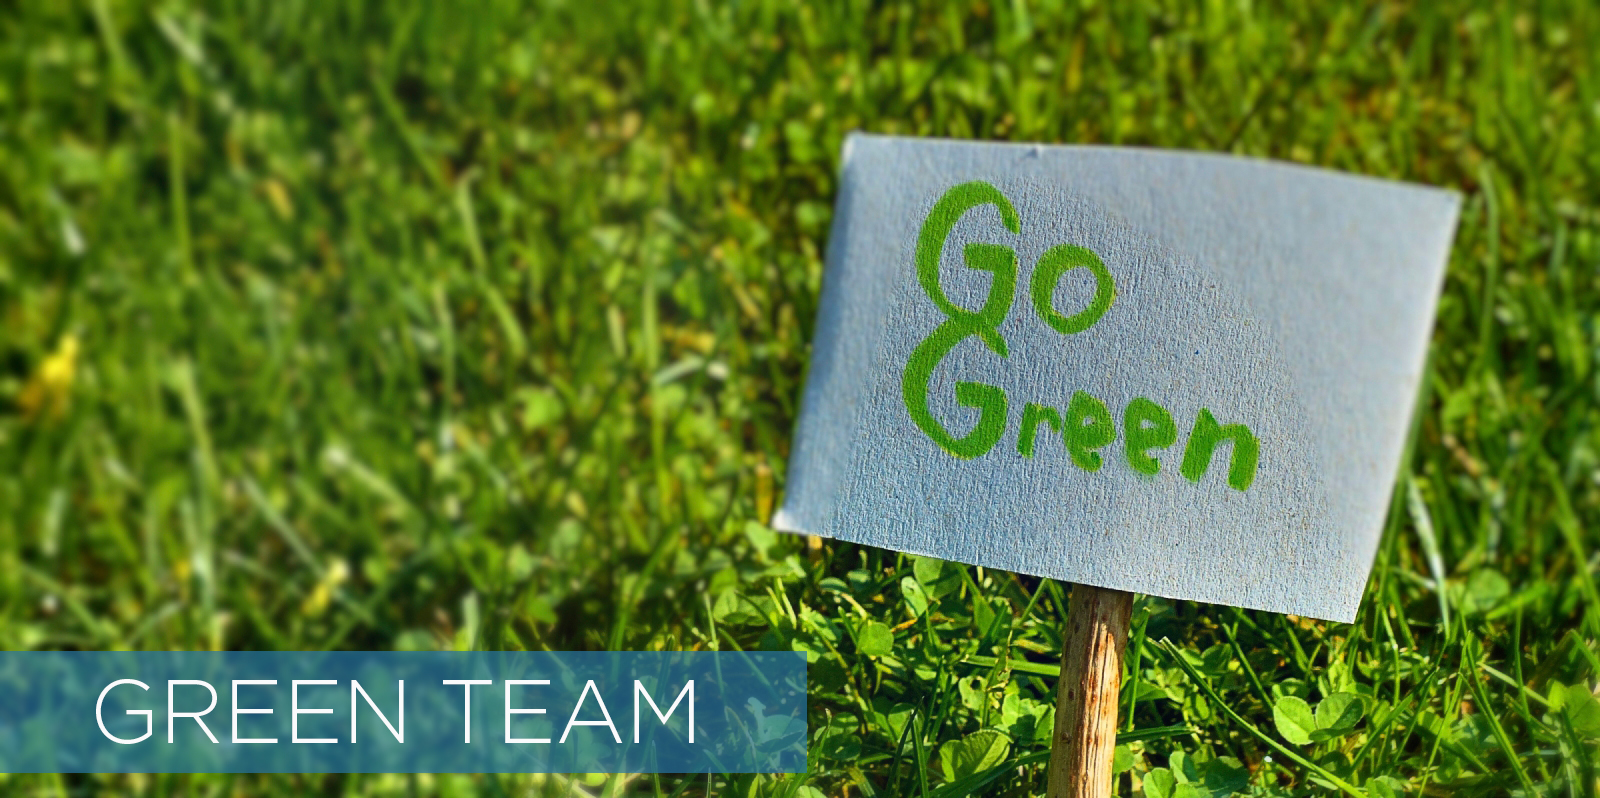 /home/templeis/public_html/images/header_image/1503359089header_image1453244880header_imageLP_GREEN TEAM.jpg.